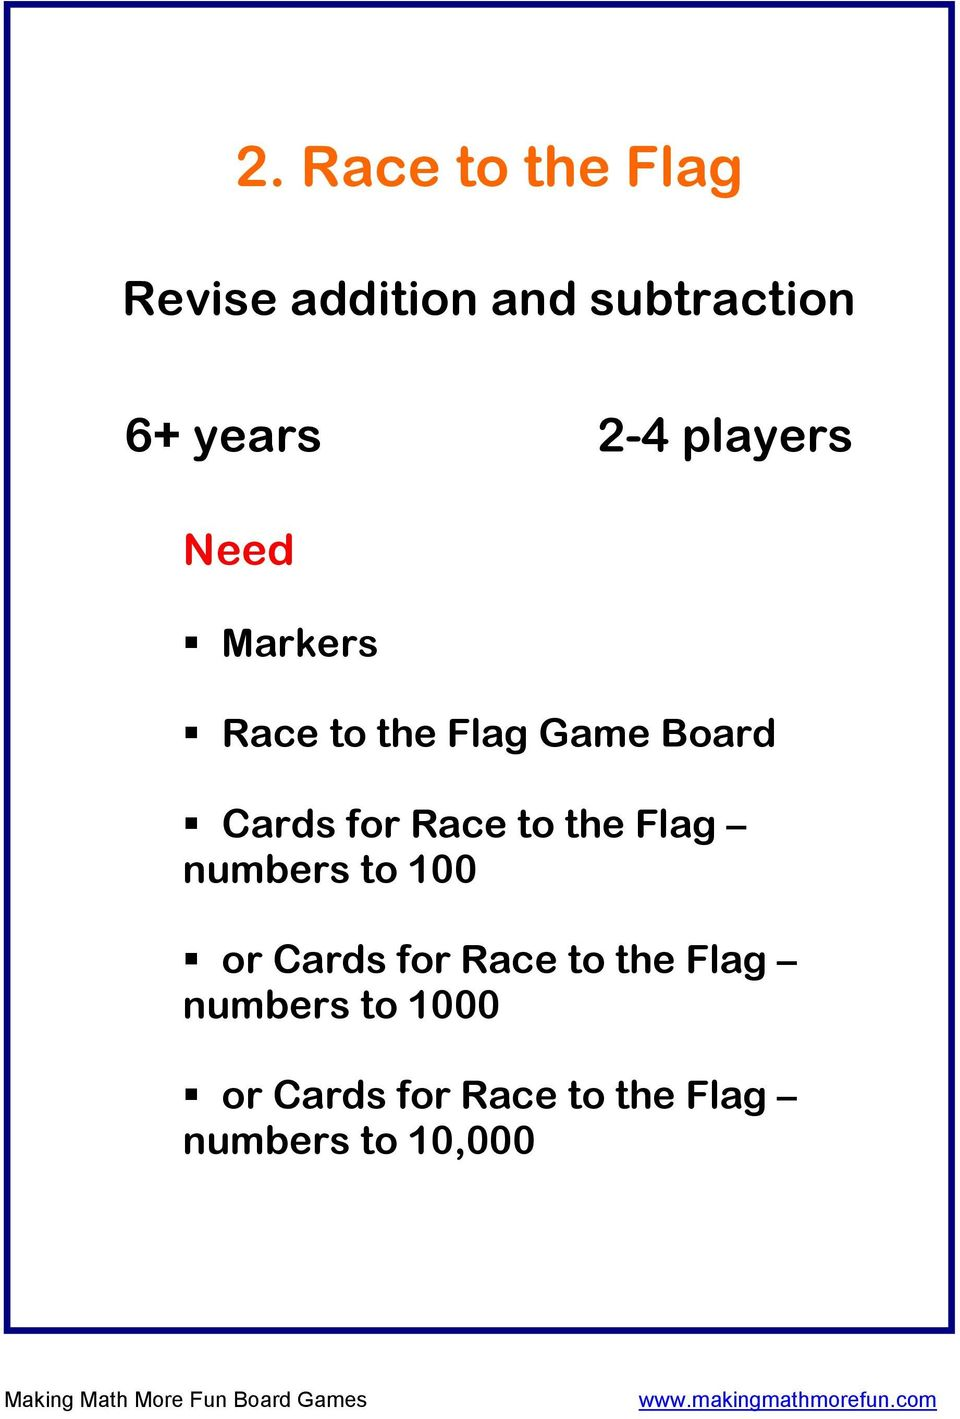 Race to the Flag numbers to 100 or Cards for Race to the Flag